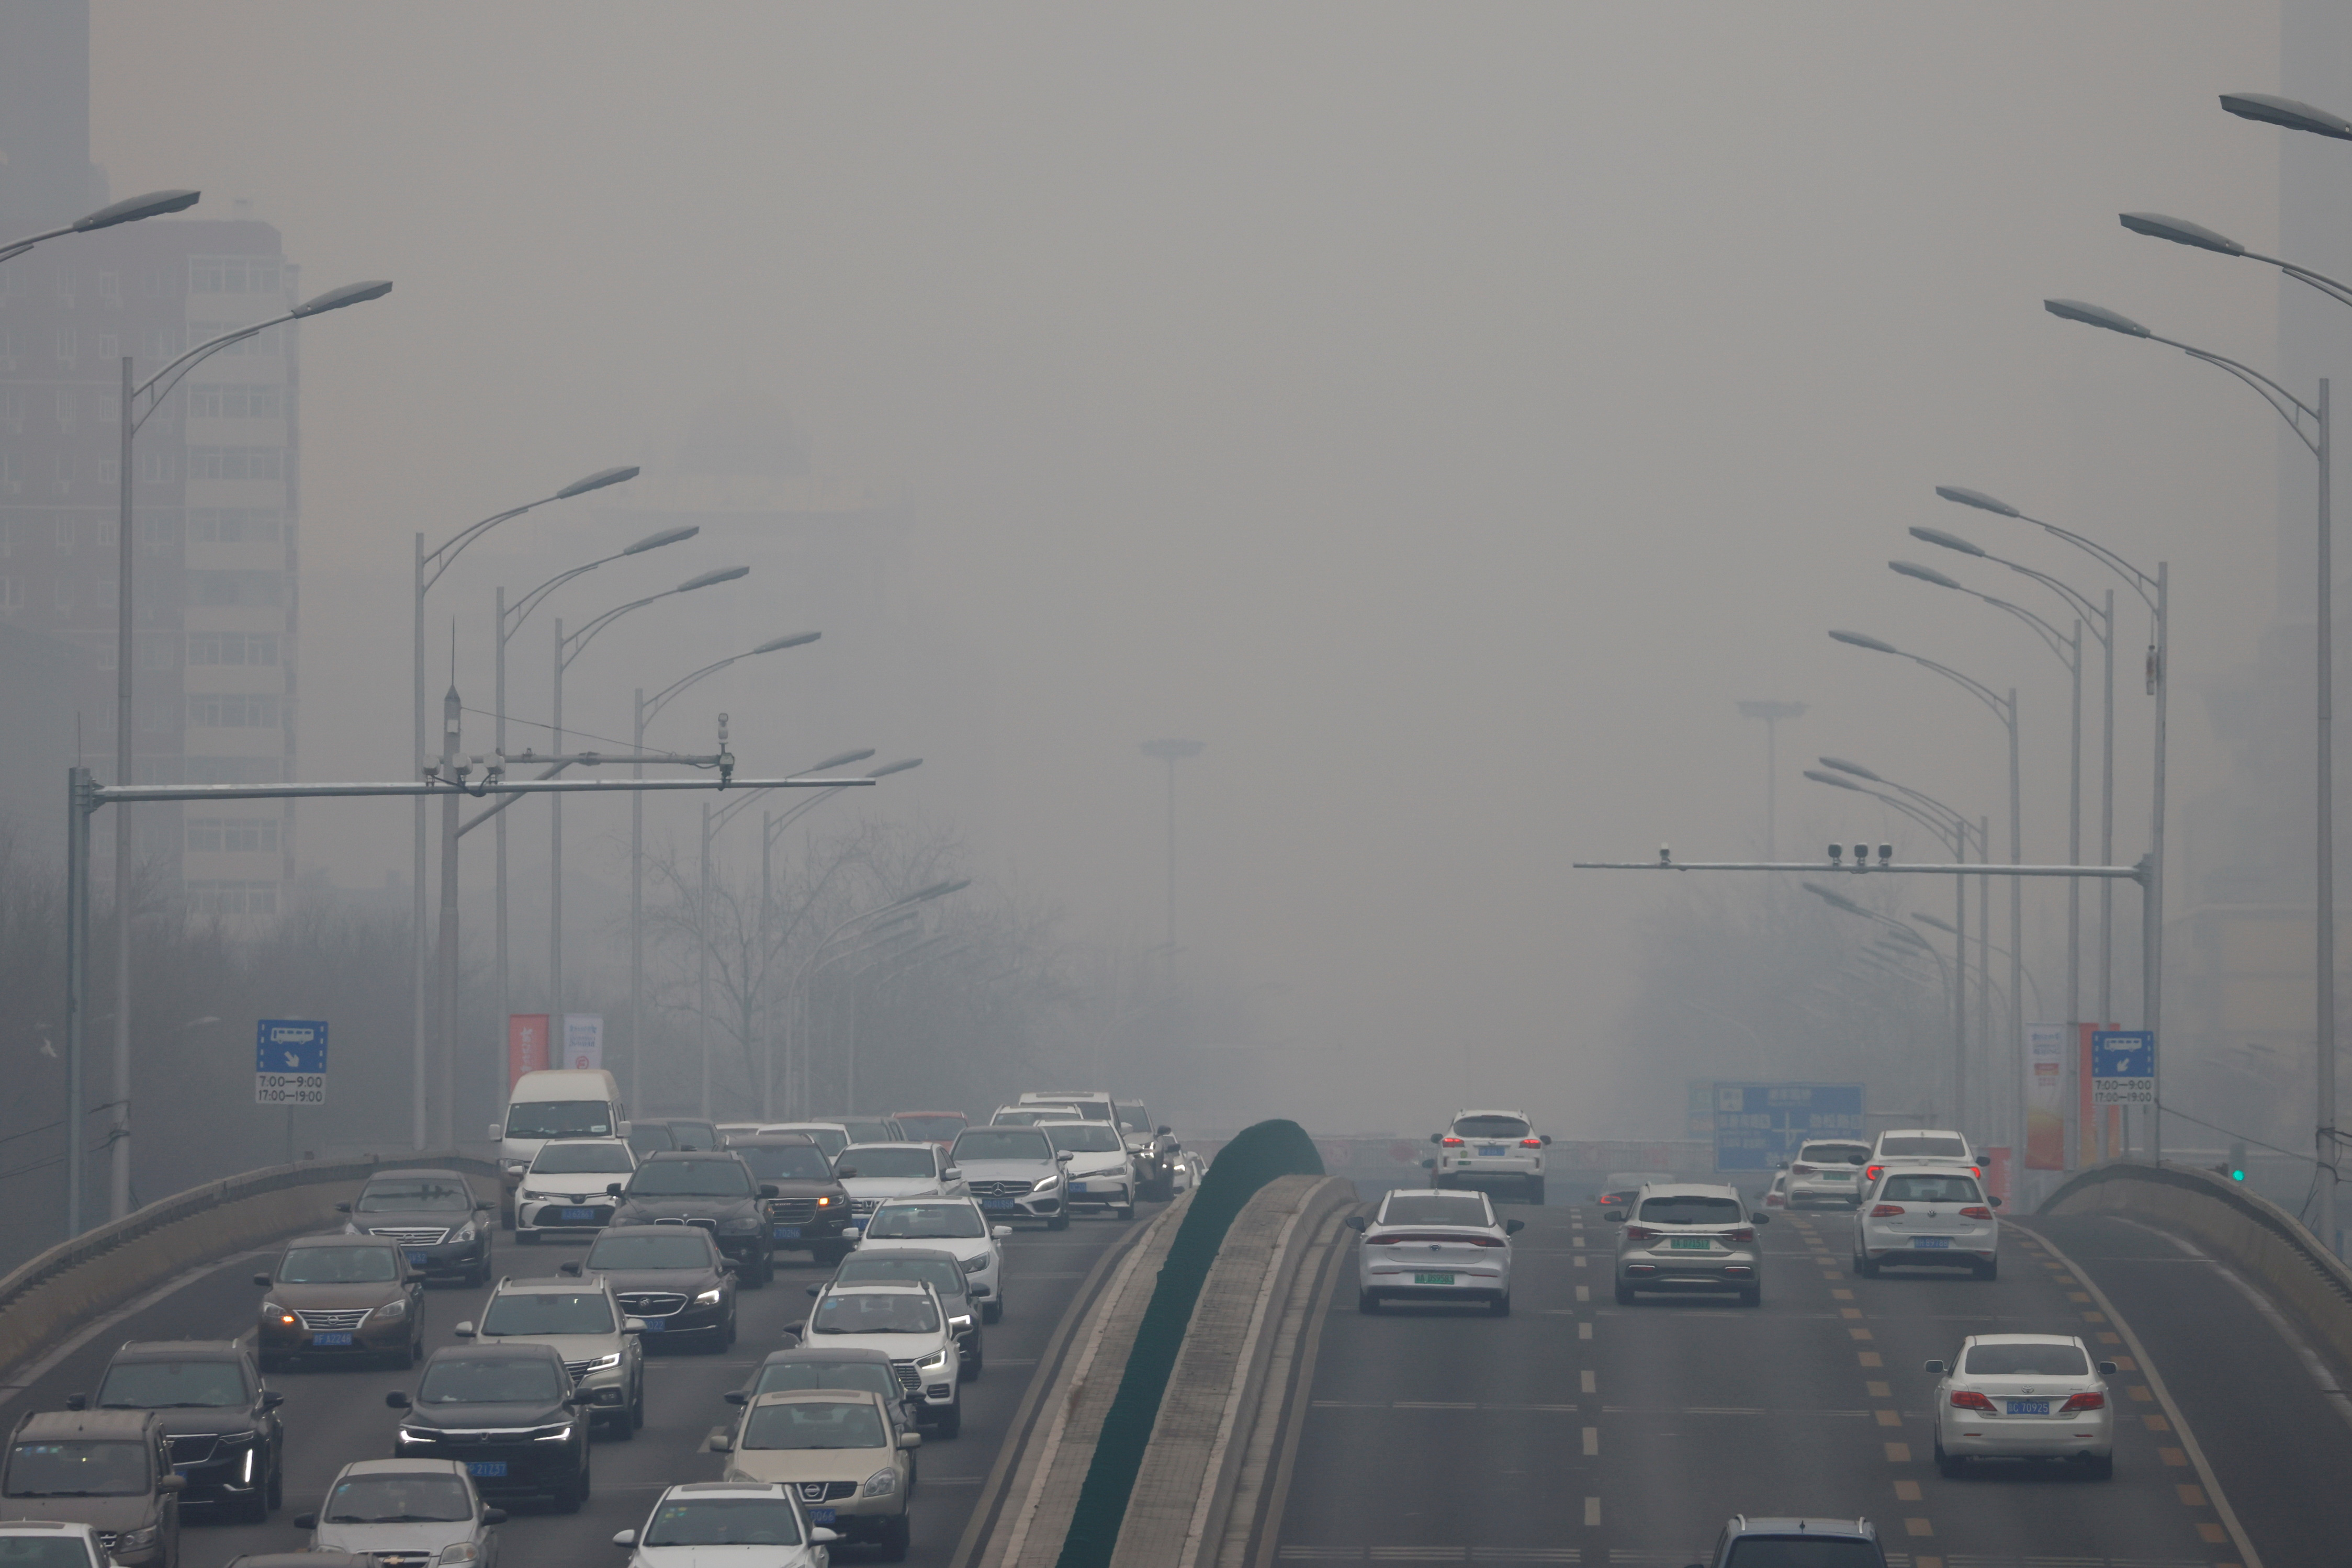 Cars move on a road during a day with polluted air, following the outbreak of the coronavirus disease (COVID-19), in Beijing, China February 13, 2021. REUTERS/Carlos Garcia Rawlins